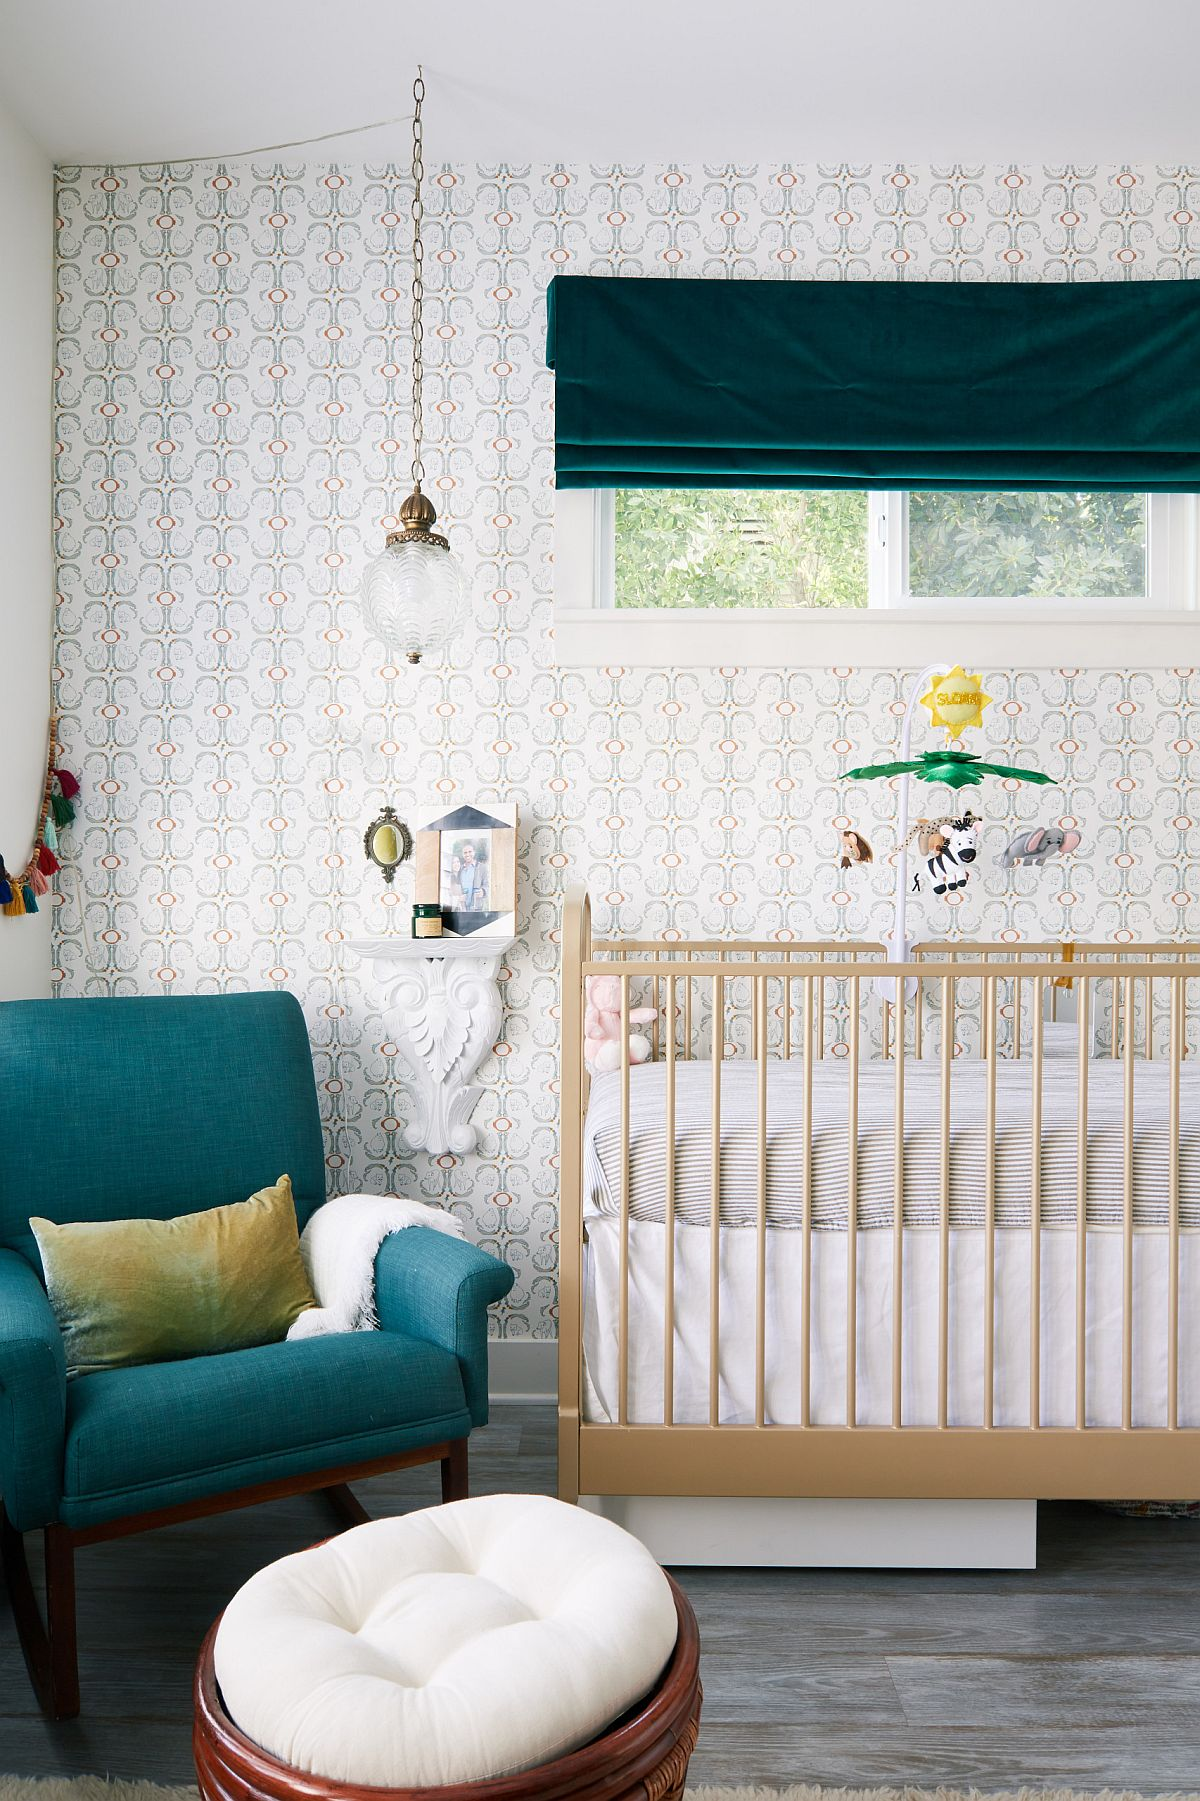 Small eclectic nursery with a pop of dark green and a neutral backdrop